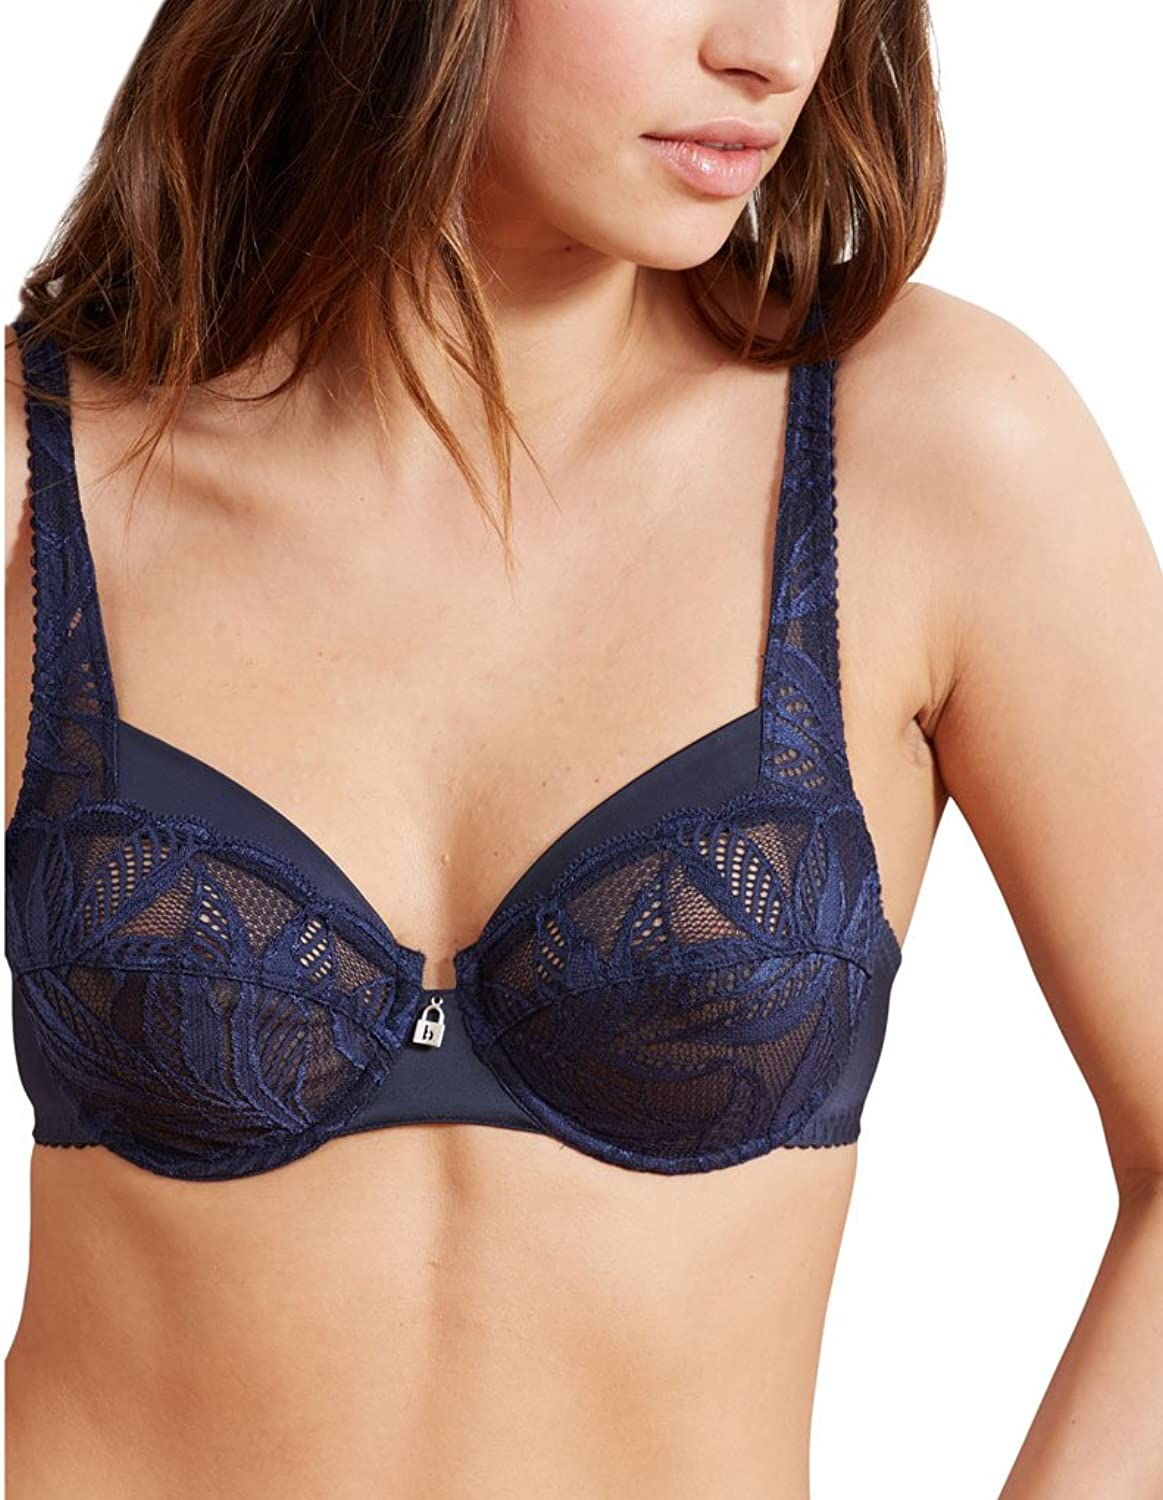 Barbara 42511 Women's Kentia Arizona bluee Navy Lace Full Cup Bra